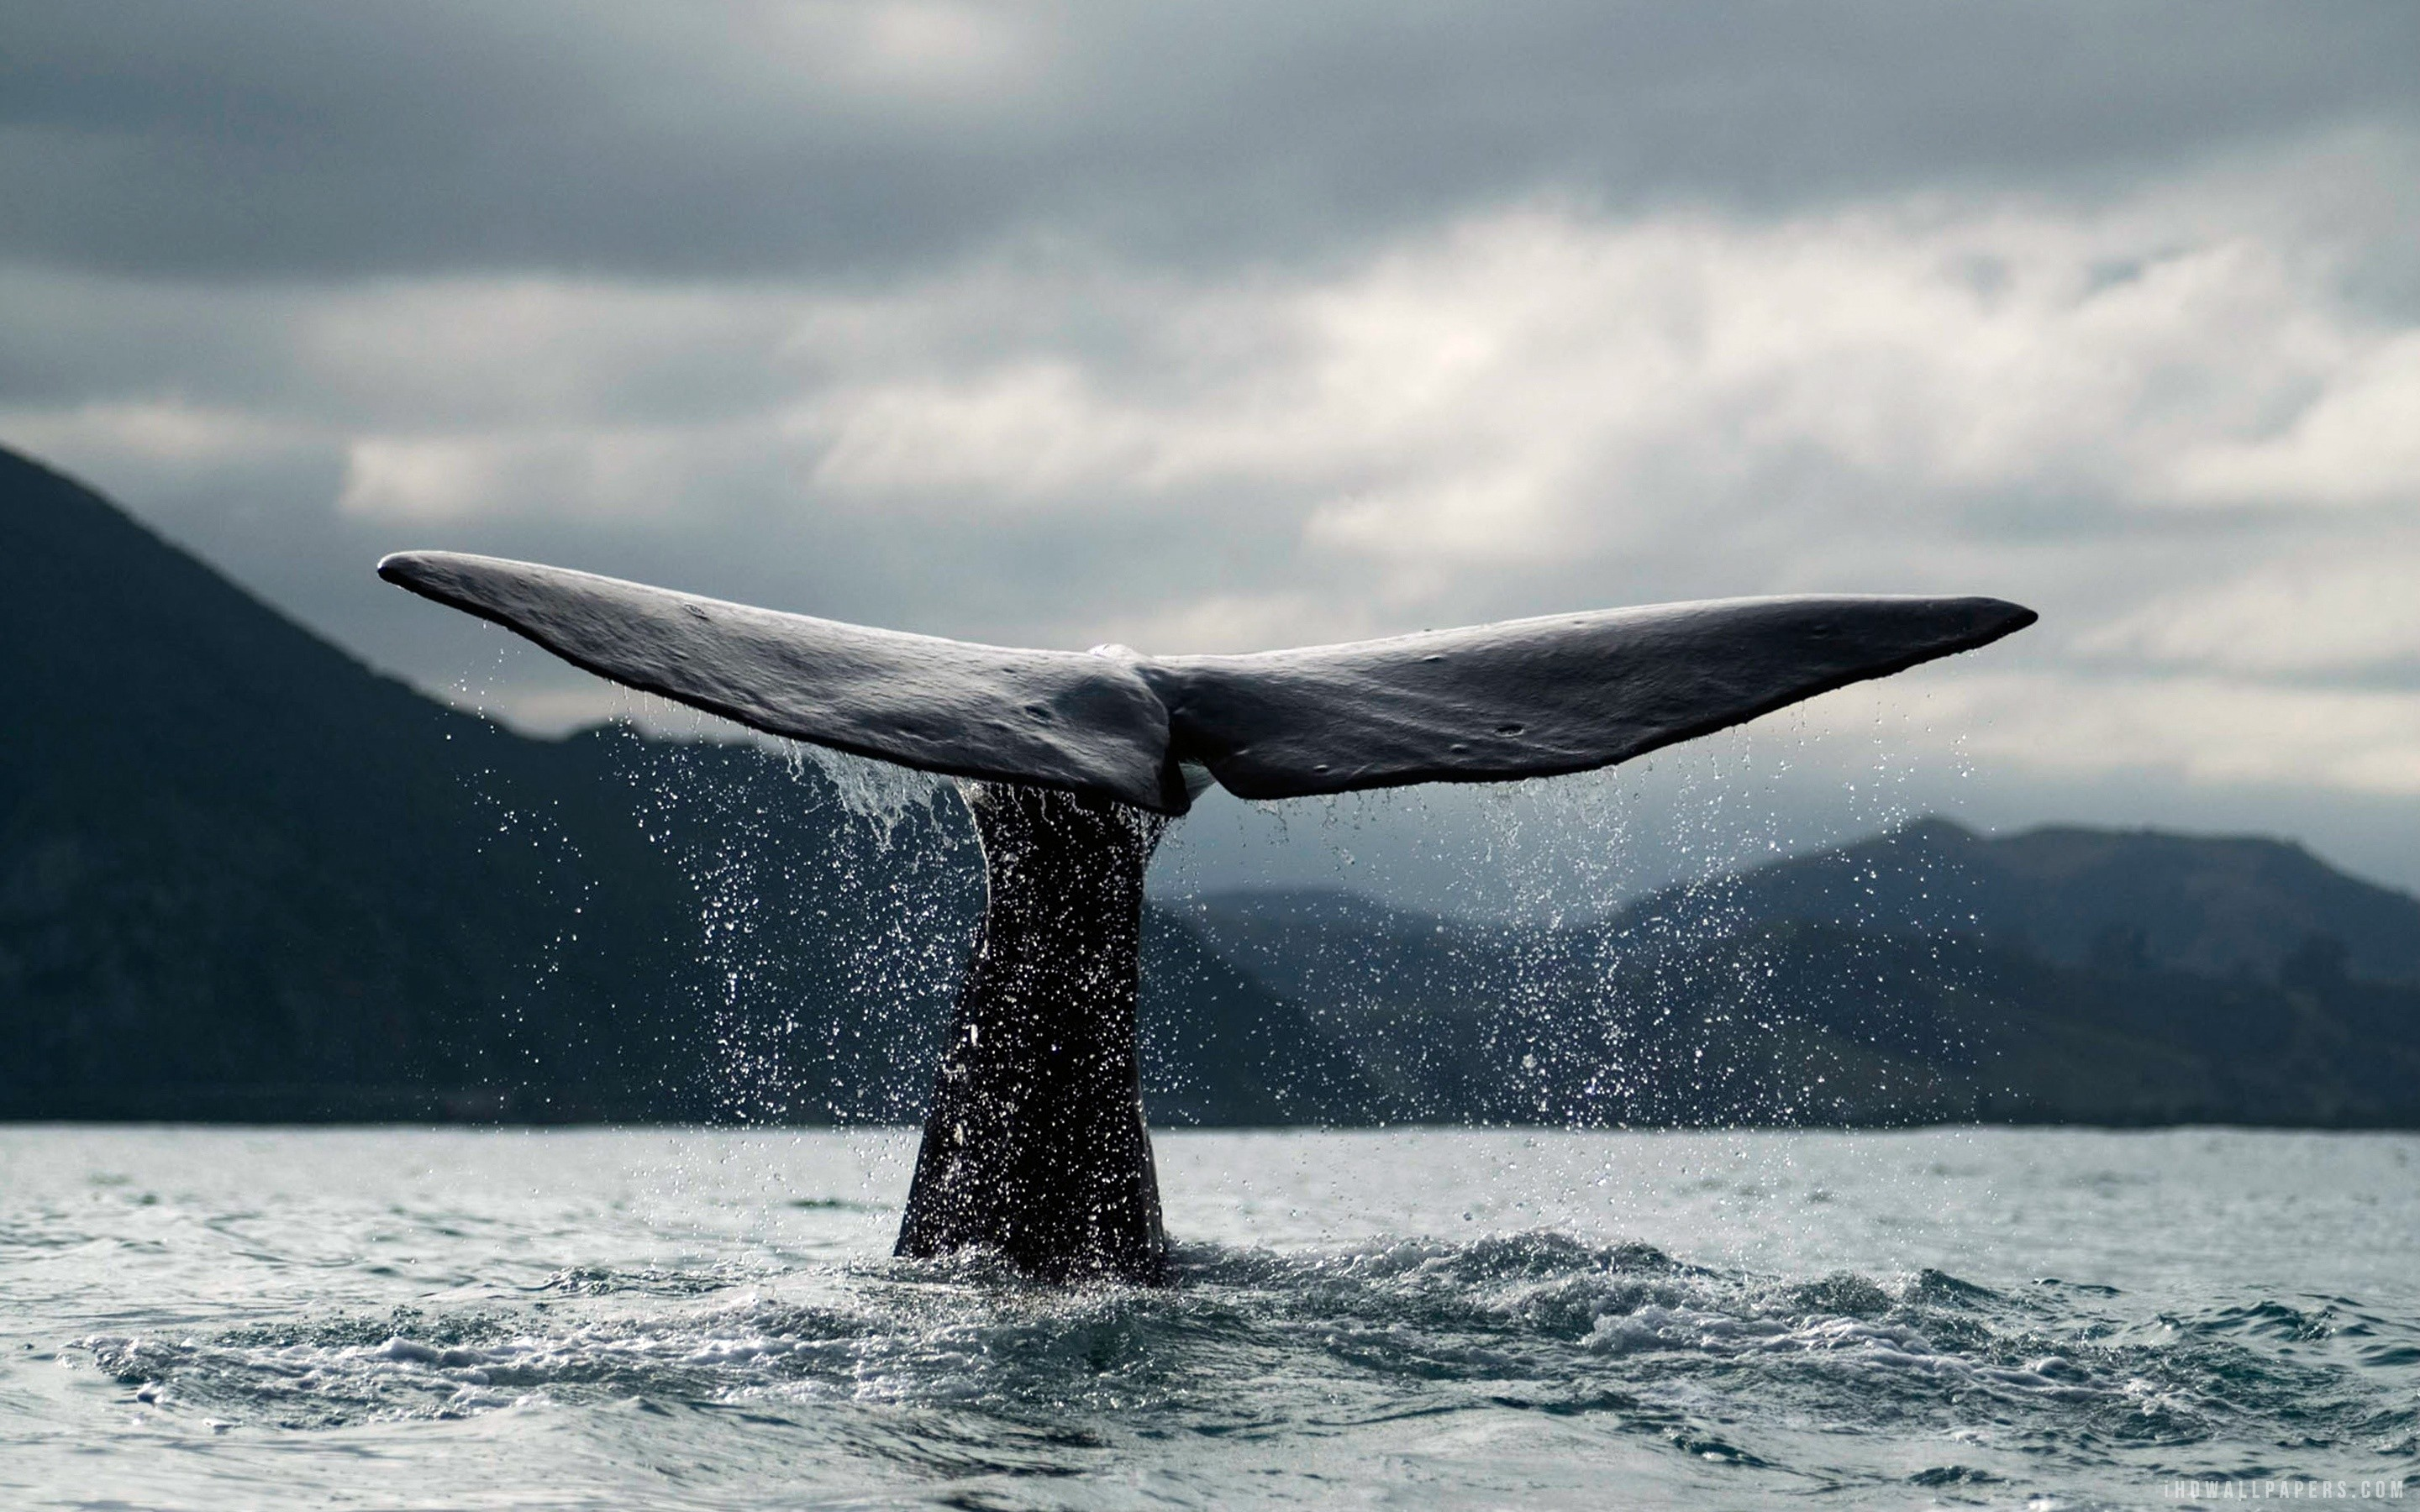 Whale Iphone Wallpaper 543343 Source Orca 6 The Galleries Of HD